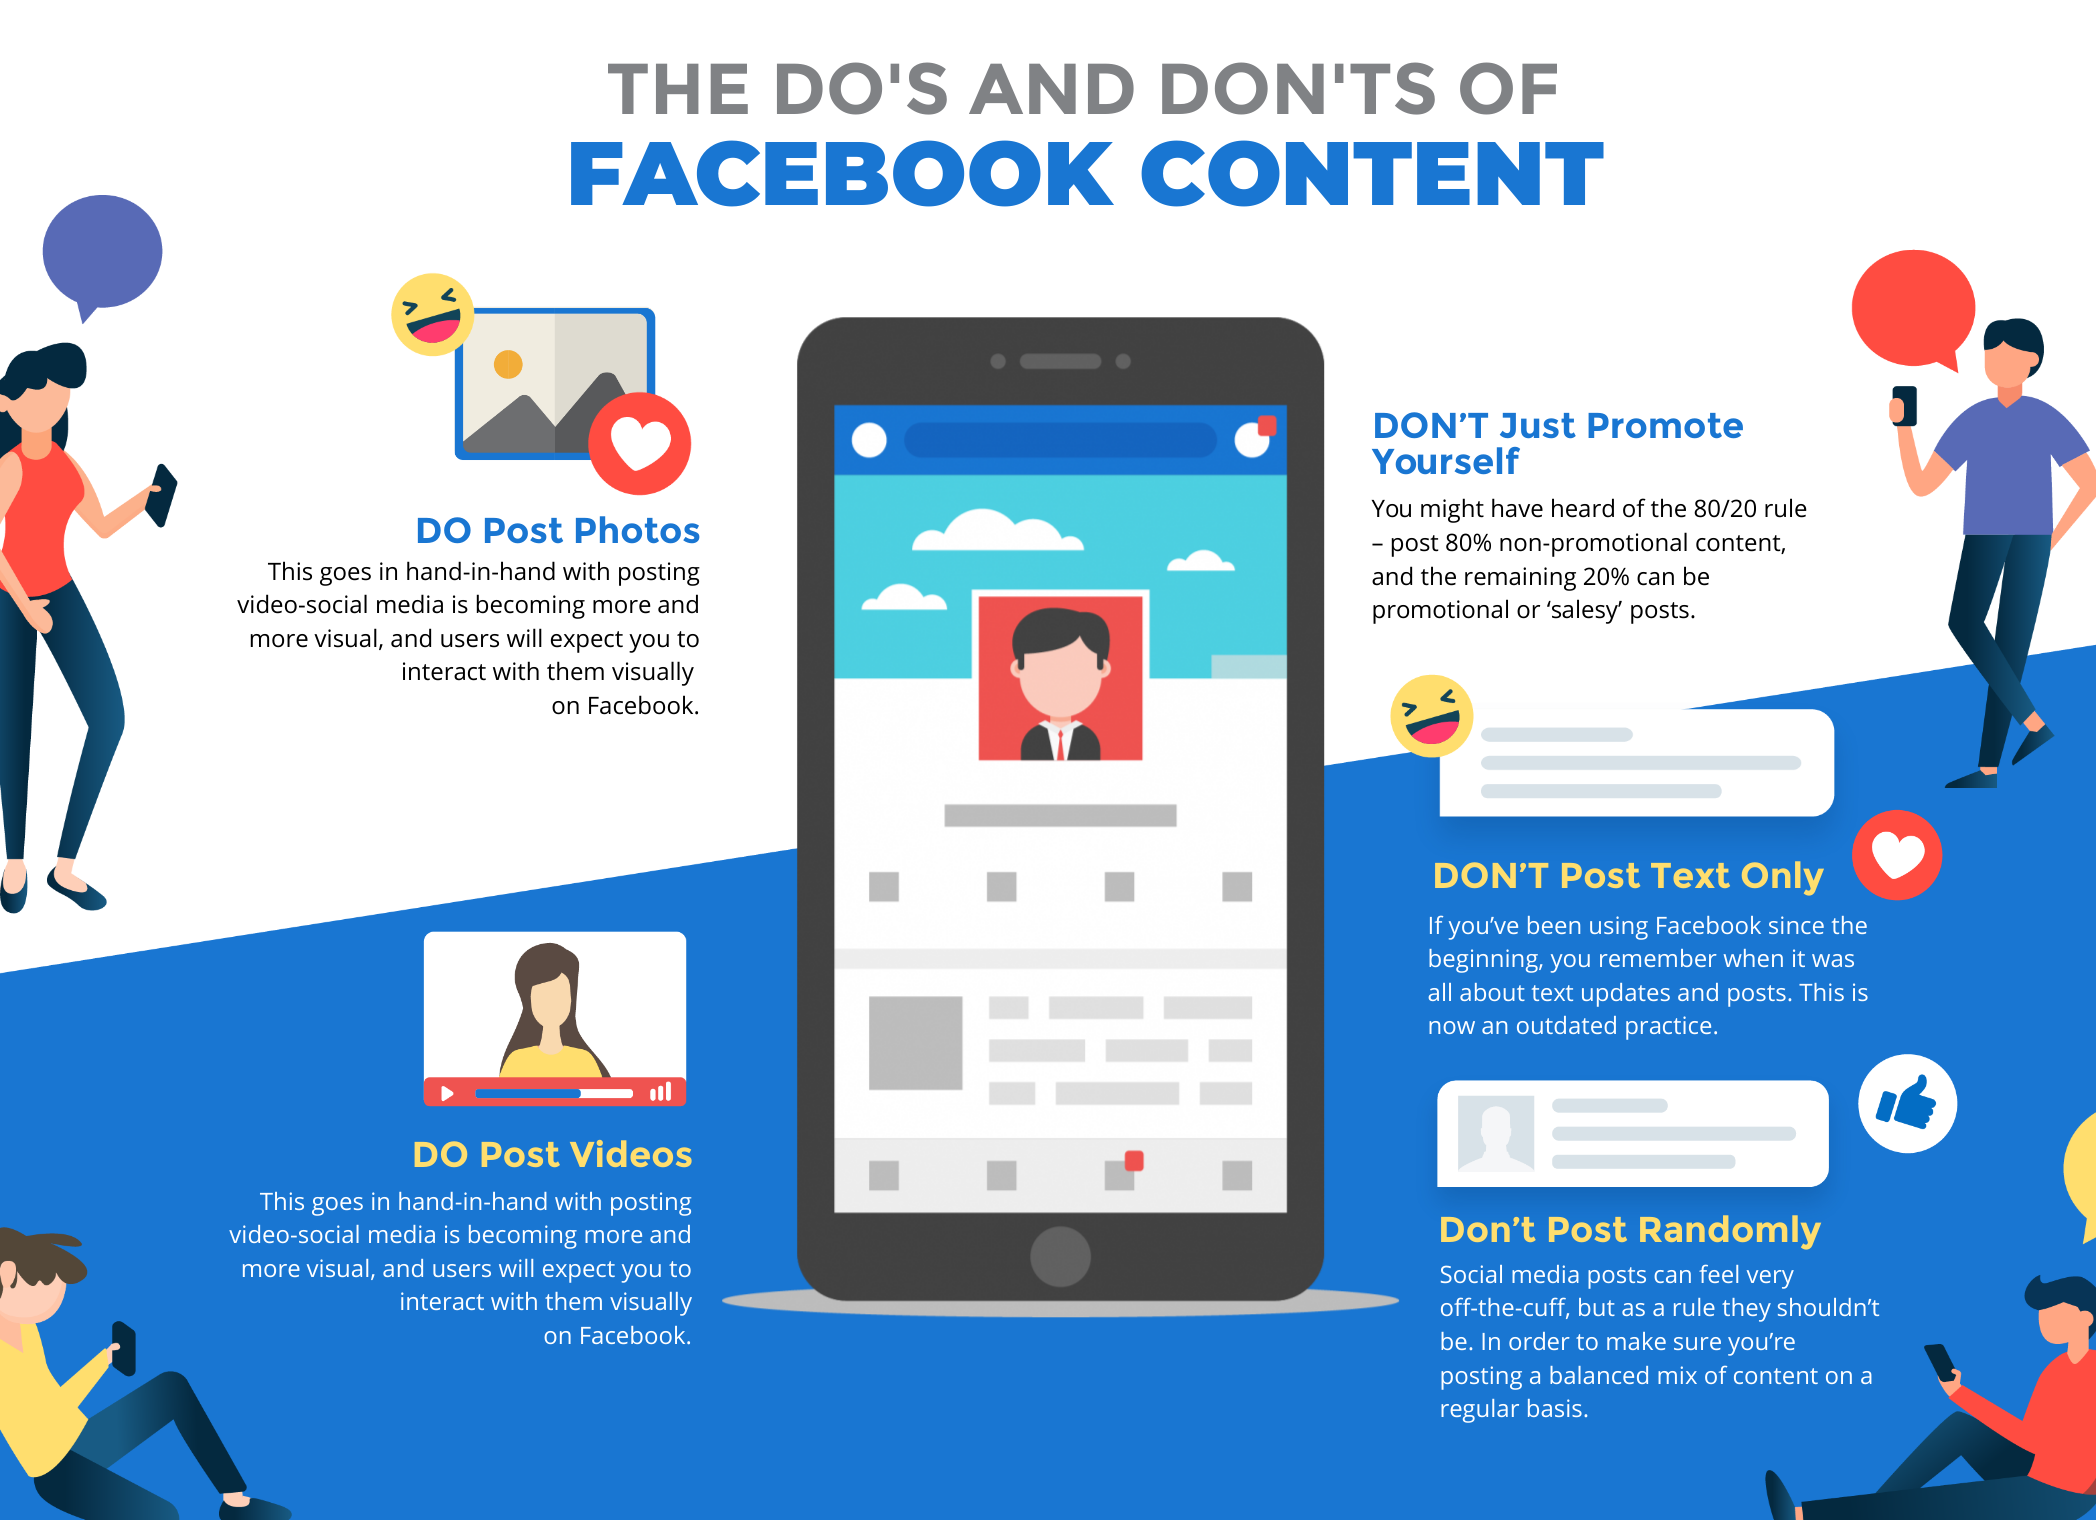 A hoizontal infographic about the do's and don'ts of facebook content